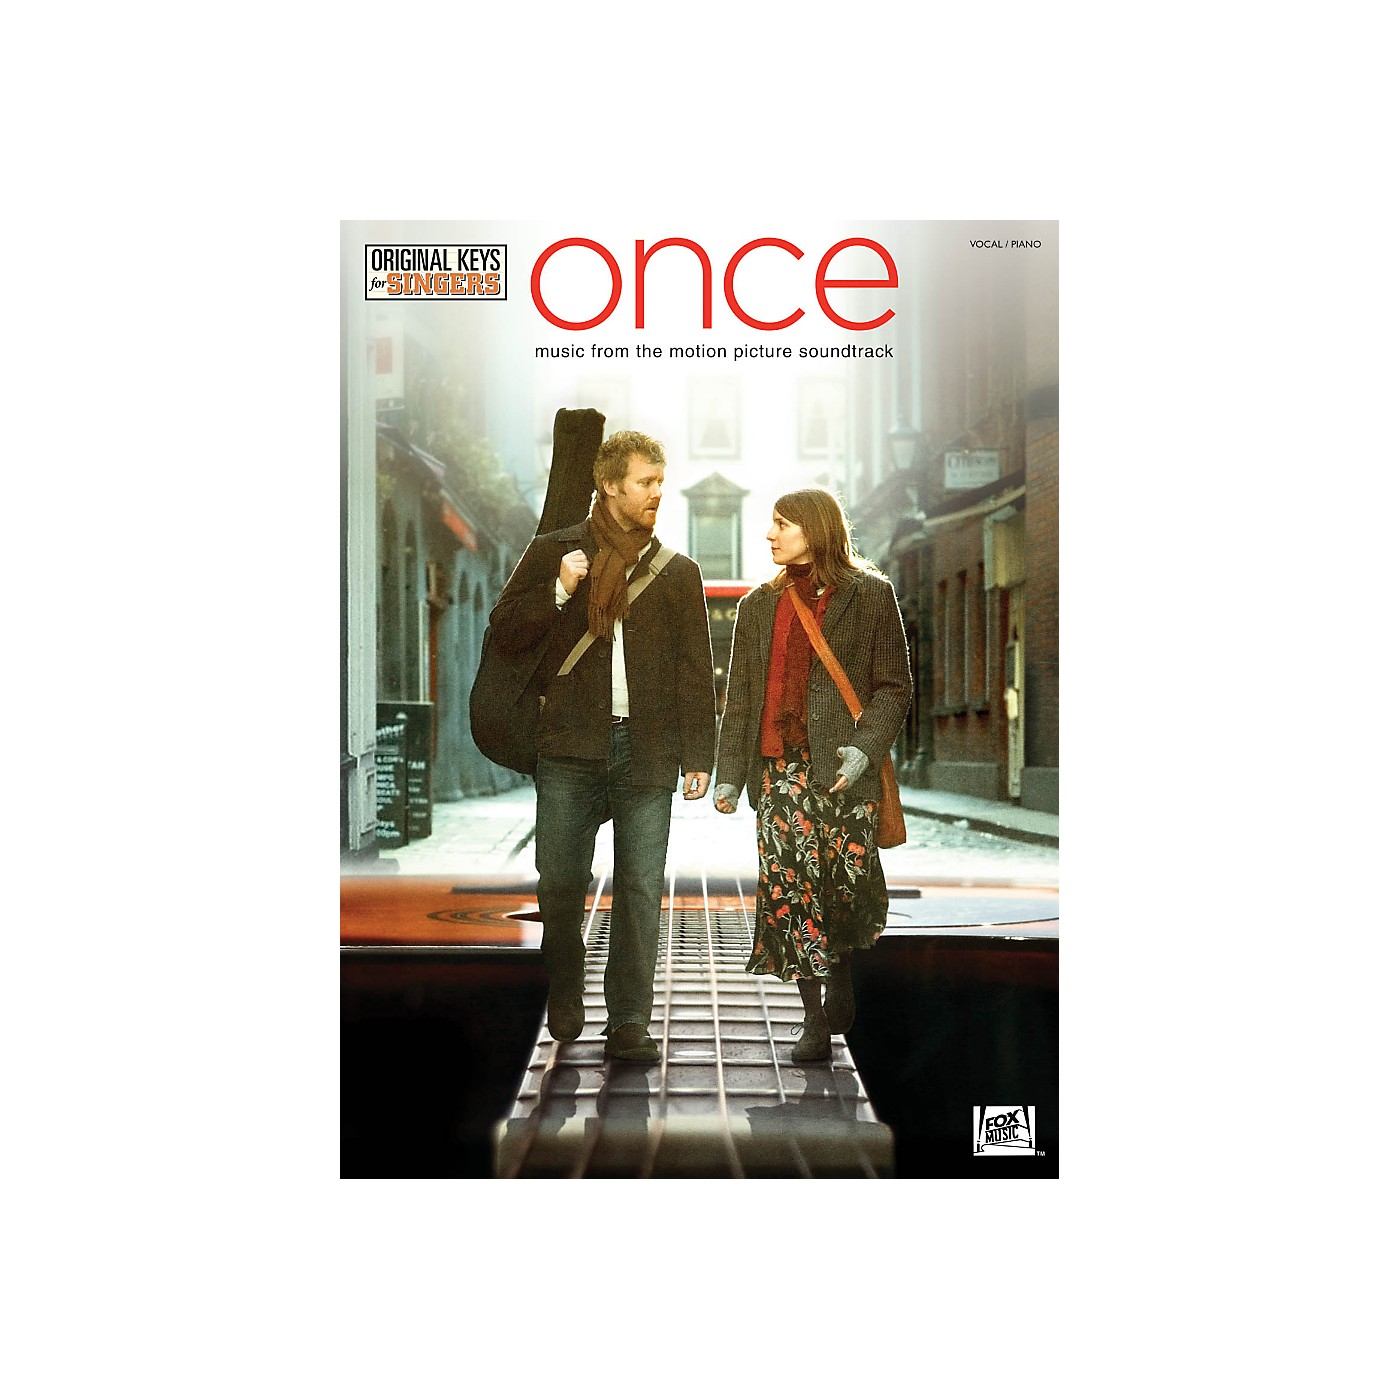 Hal Leonard Once - Music From The Motion Picture - Original Keys For Singers thumbnail